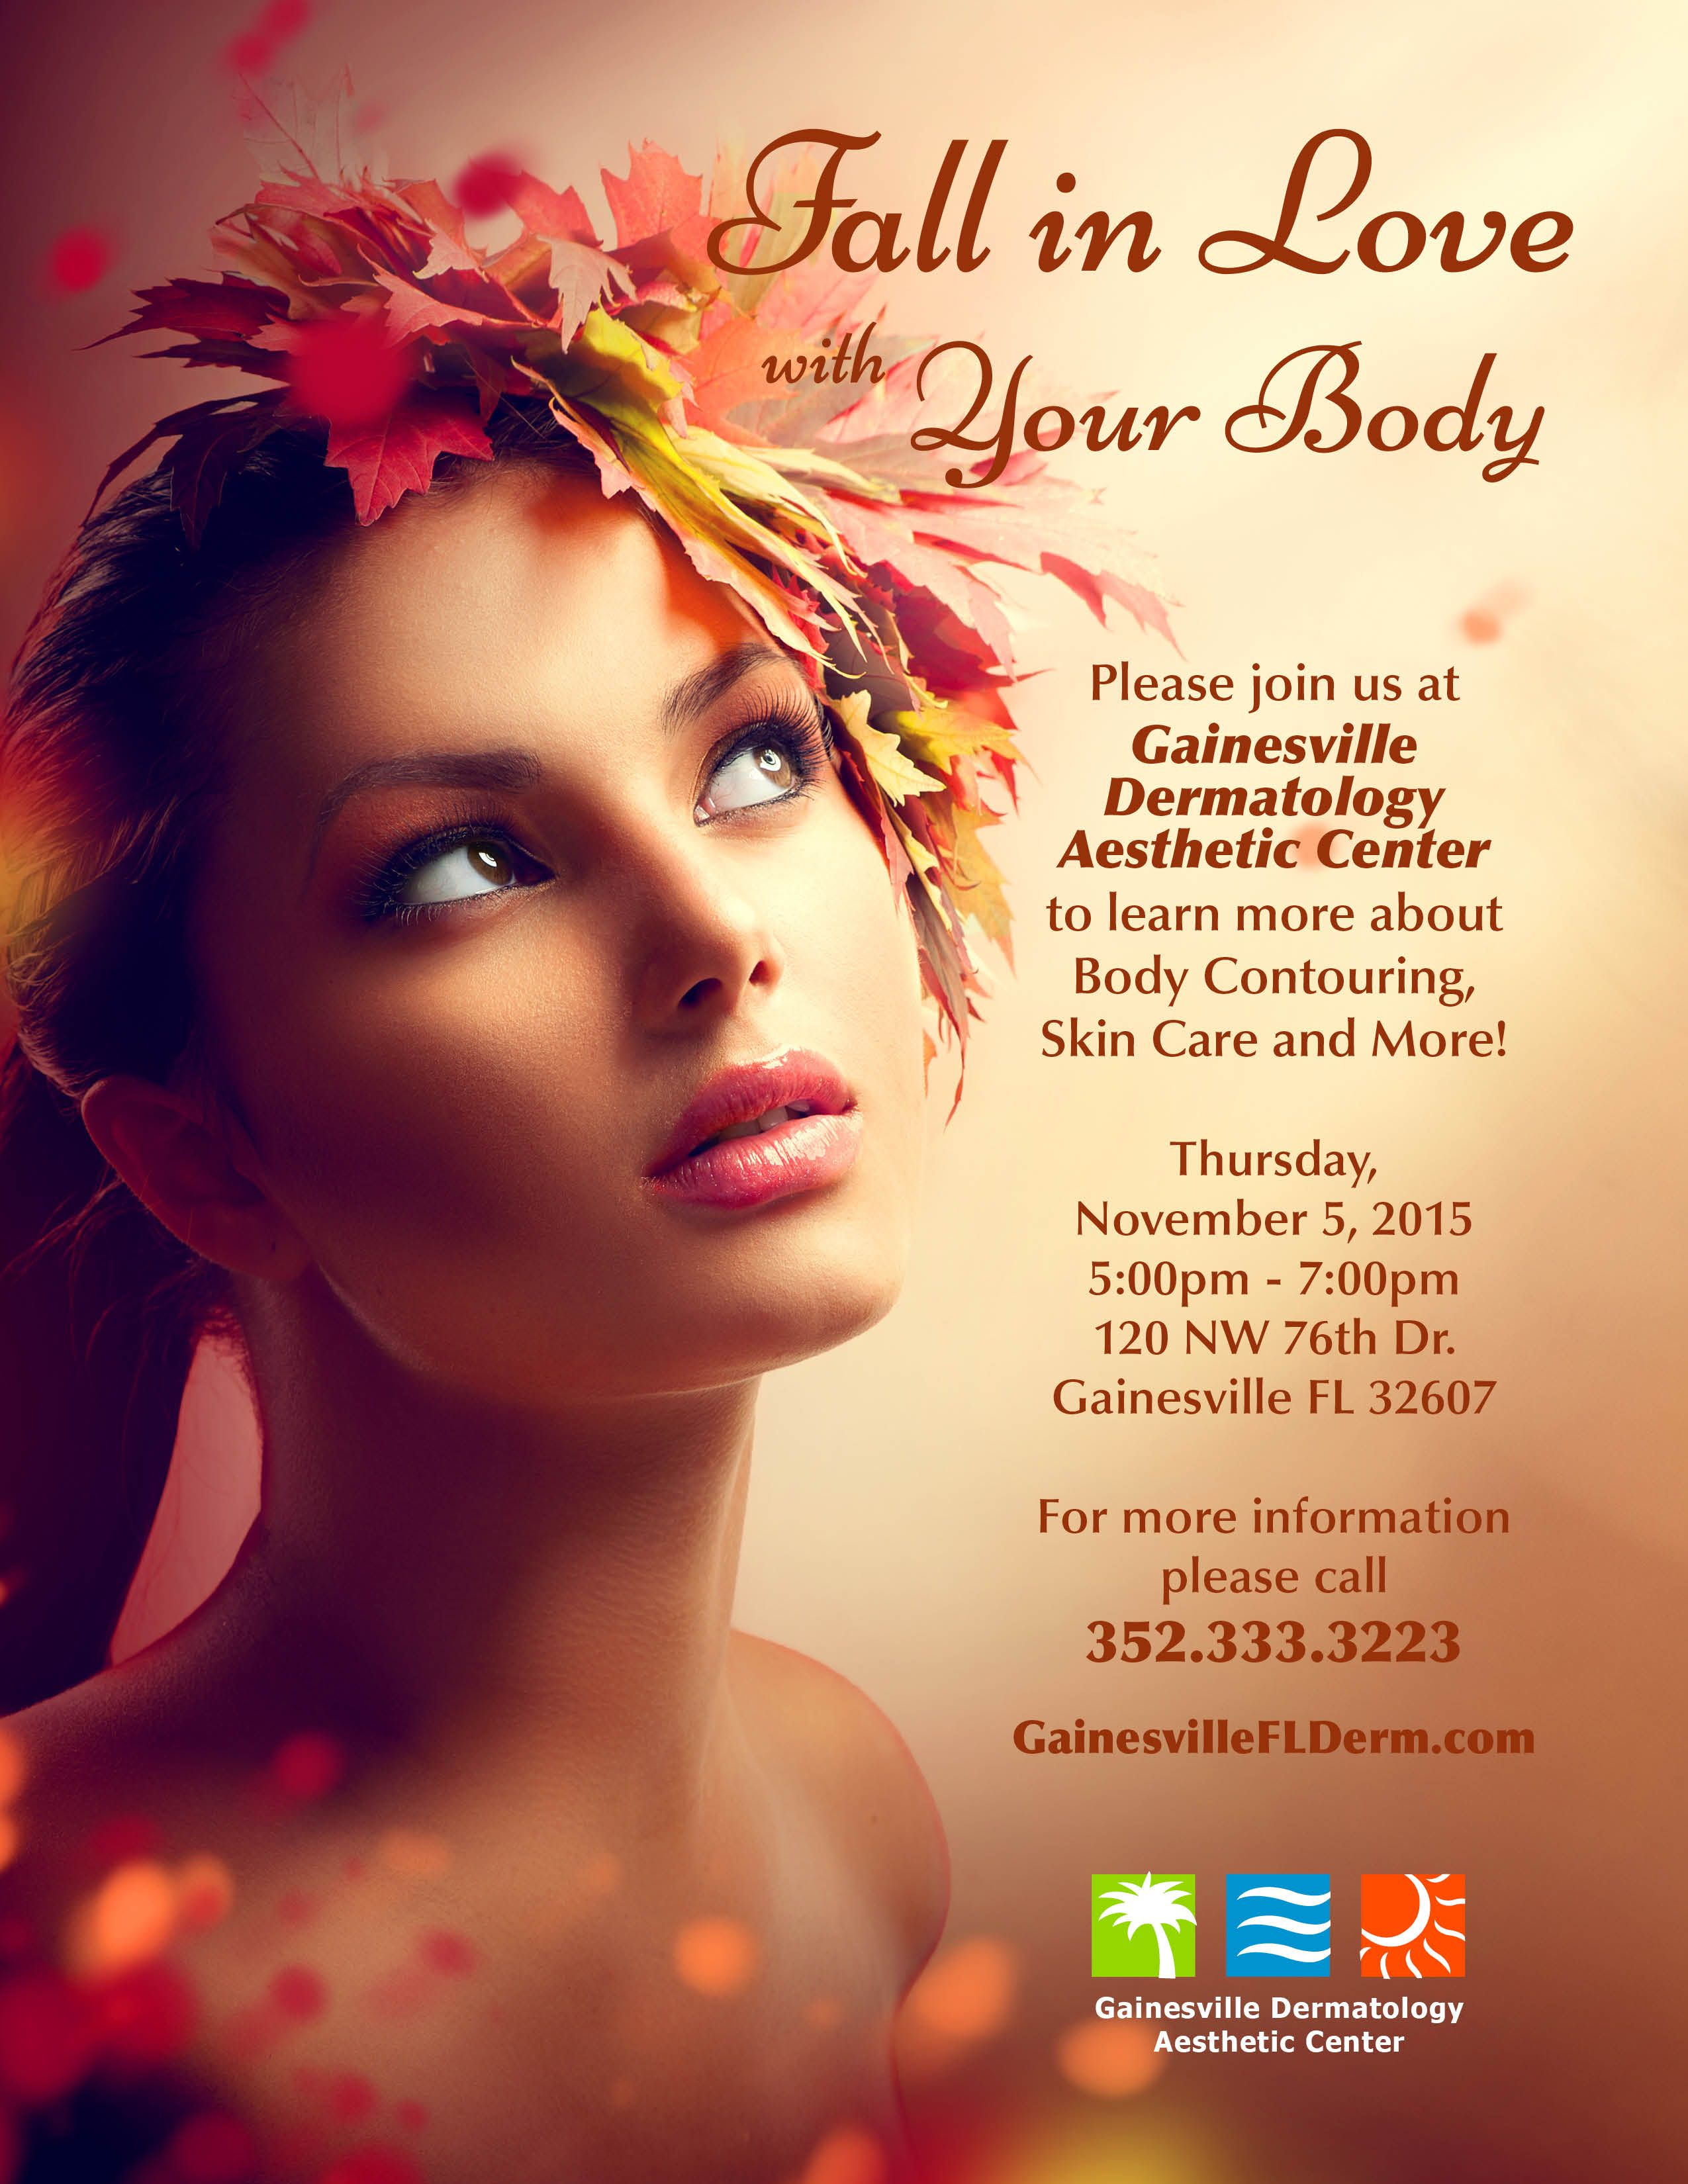 Come Join Us For A Fun Filled Night November 5th 2015 Loveyourskin Fall Gdac Dermatology Dermatology Body Contouring Aesthetic Center